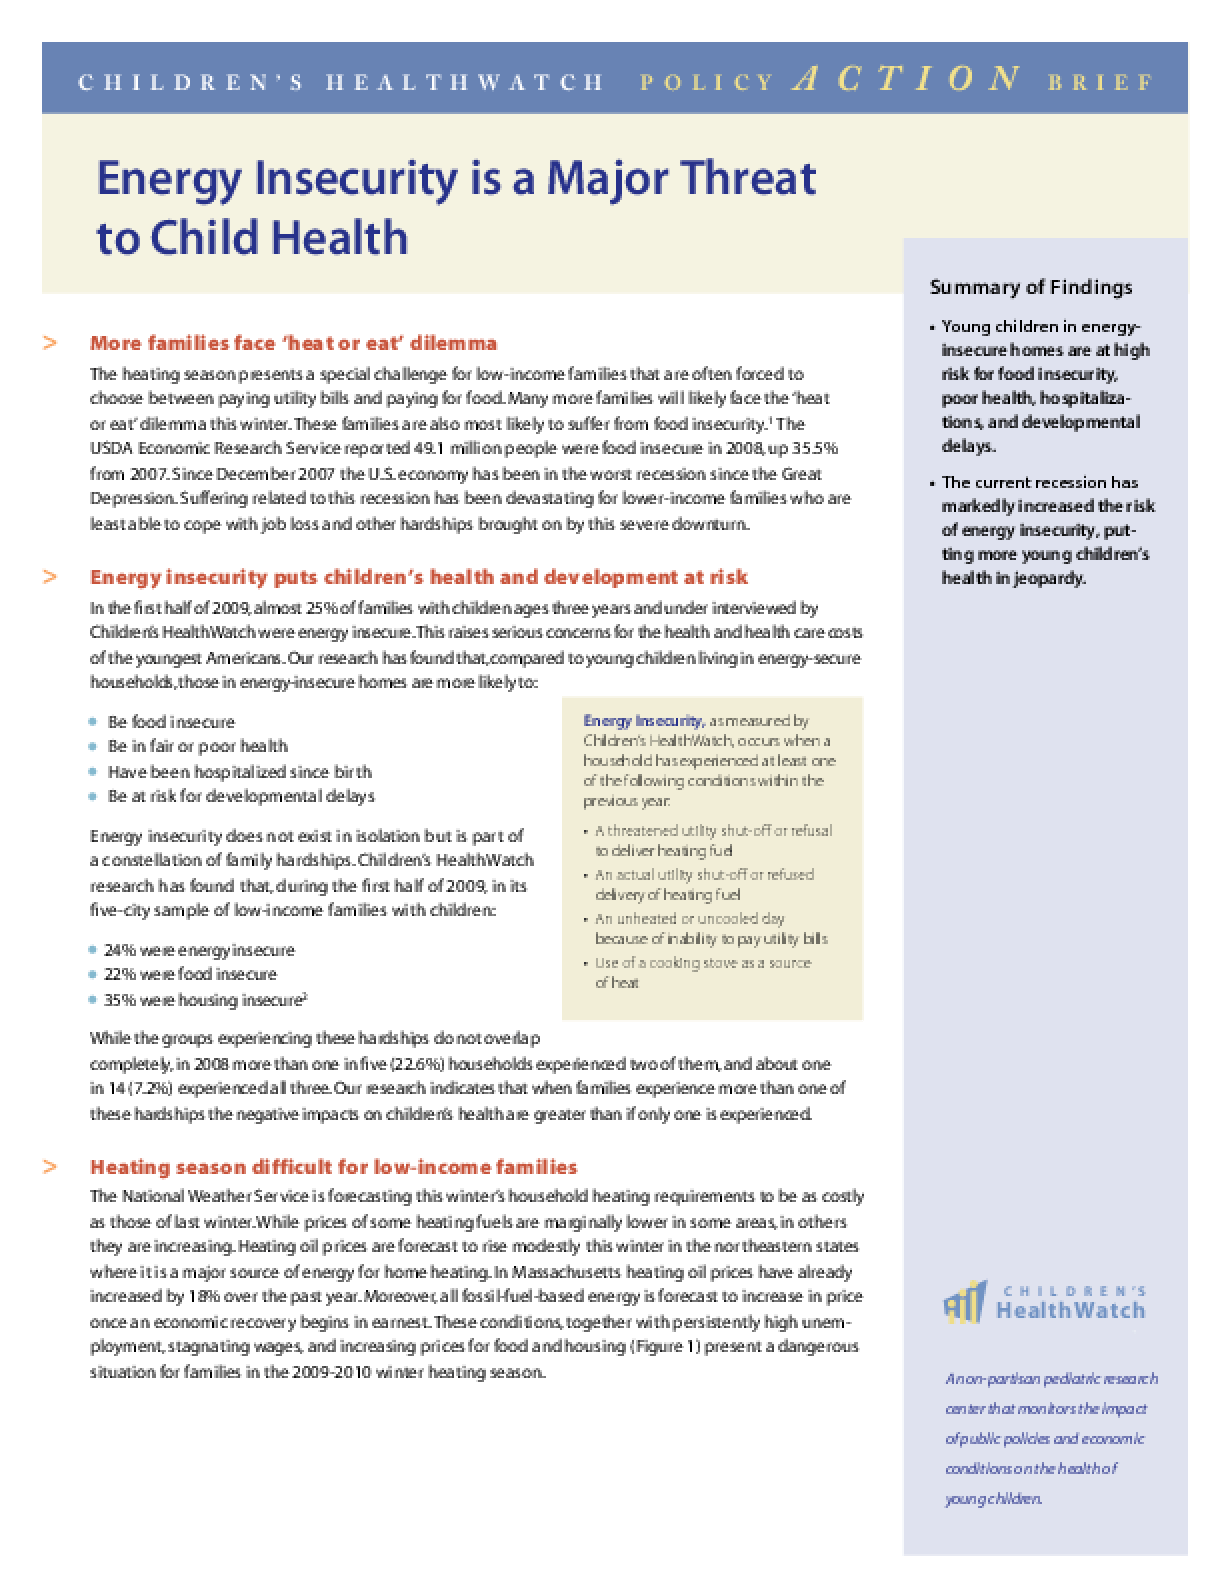 Energy Insecurity is a Major Threat to Child Health